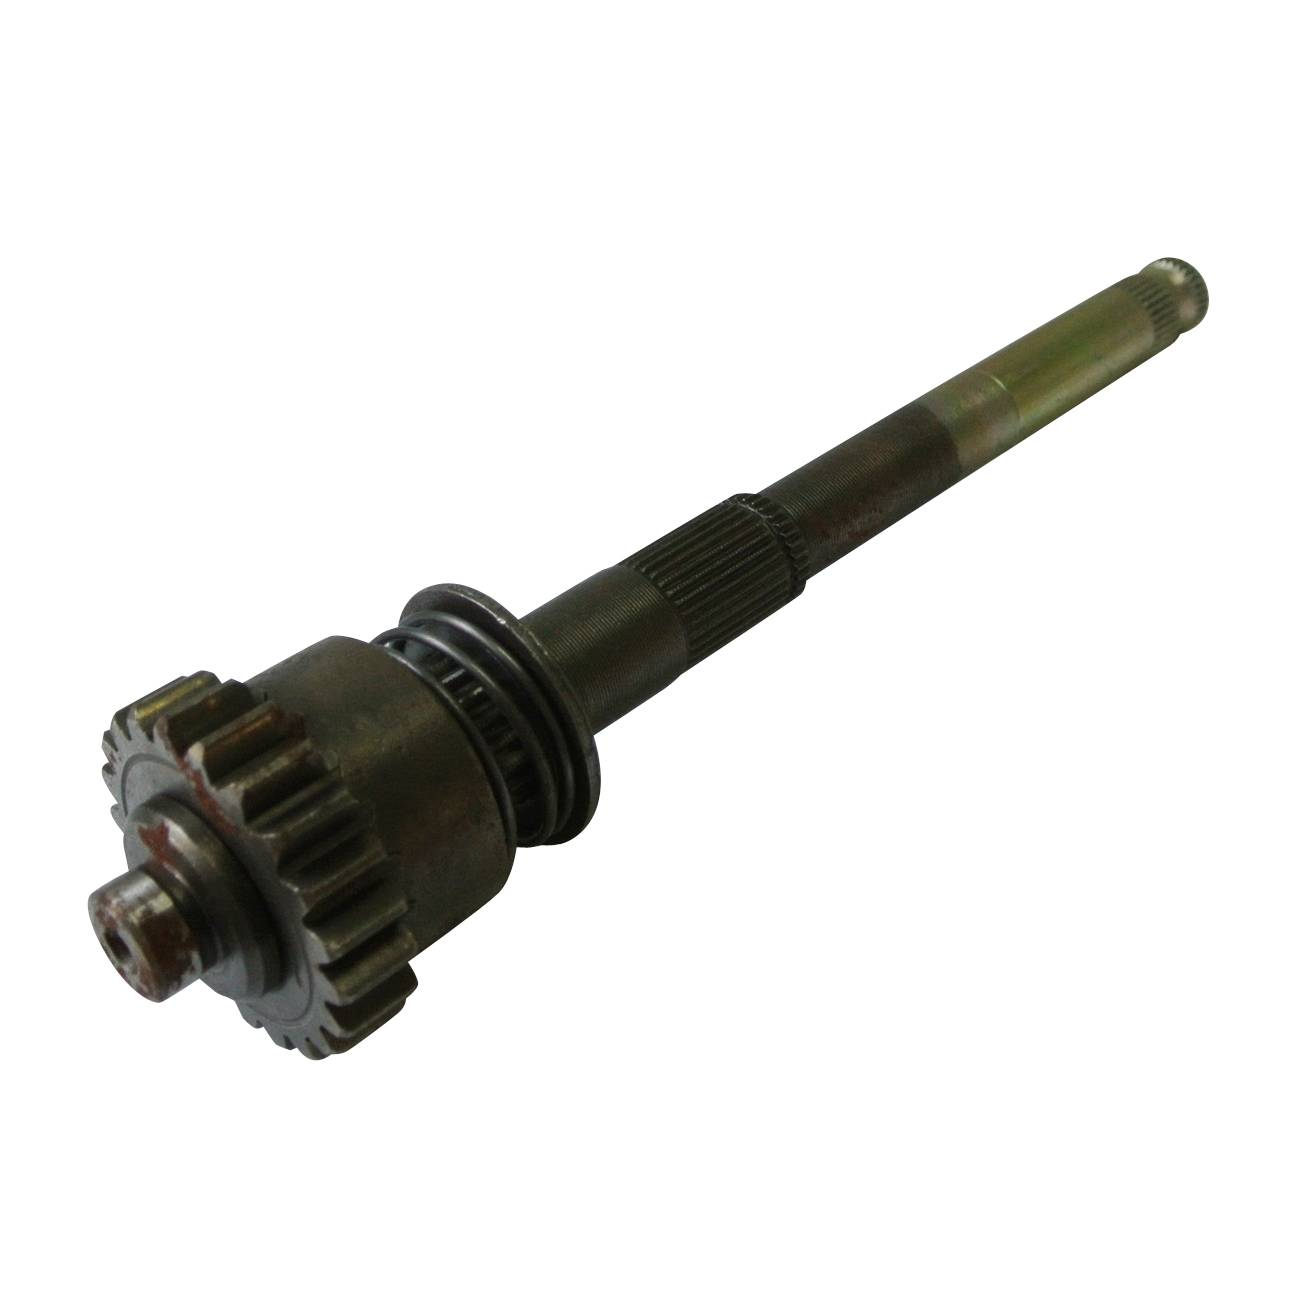 14mm Kickstart Shaft For <font><b>LIFAN</b></font> <font><b>110cc</b></font> 125cc <font><b>Engine</b></font> Parts image